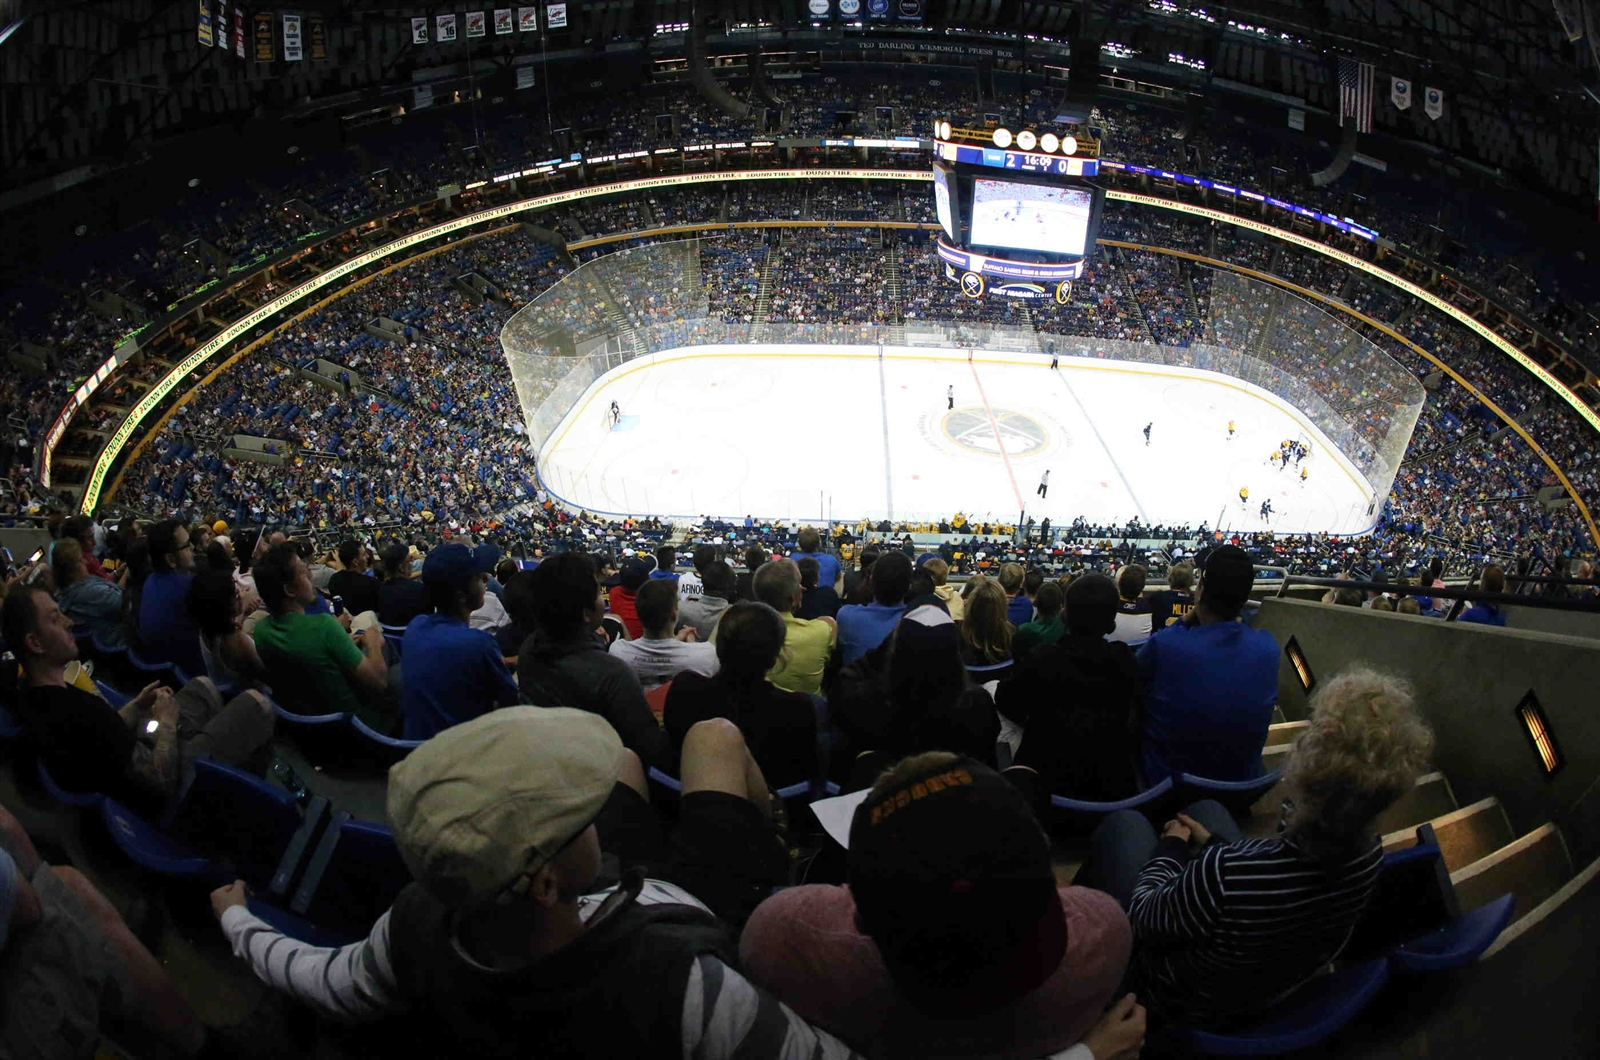 More than 17,000 fans nearly filled First Niagara Center for the Sabres' development camp scrimmage.  (James P. McCoy/Buffalo News)